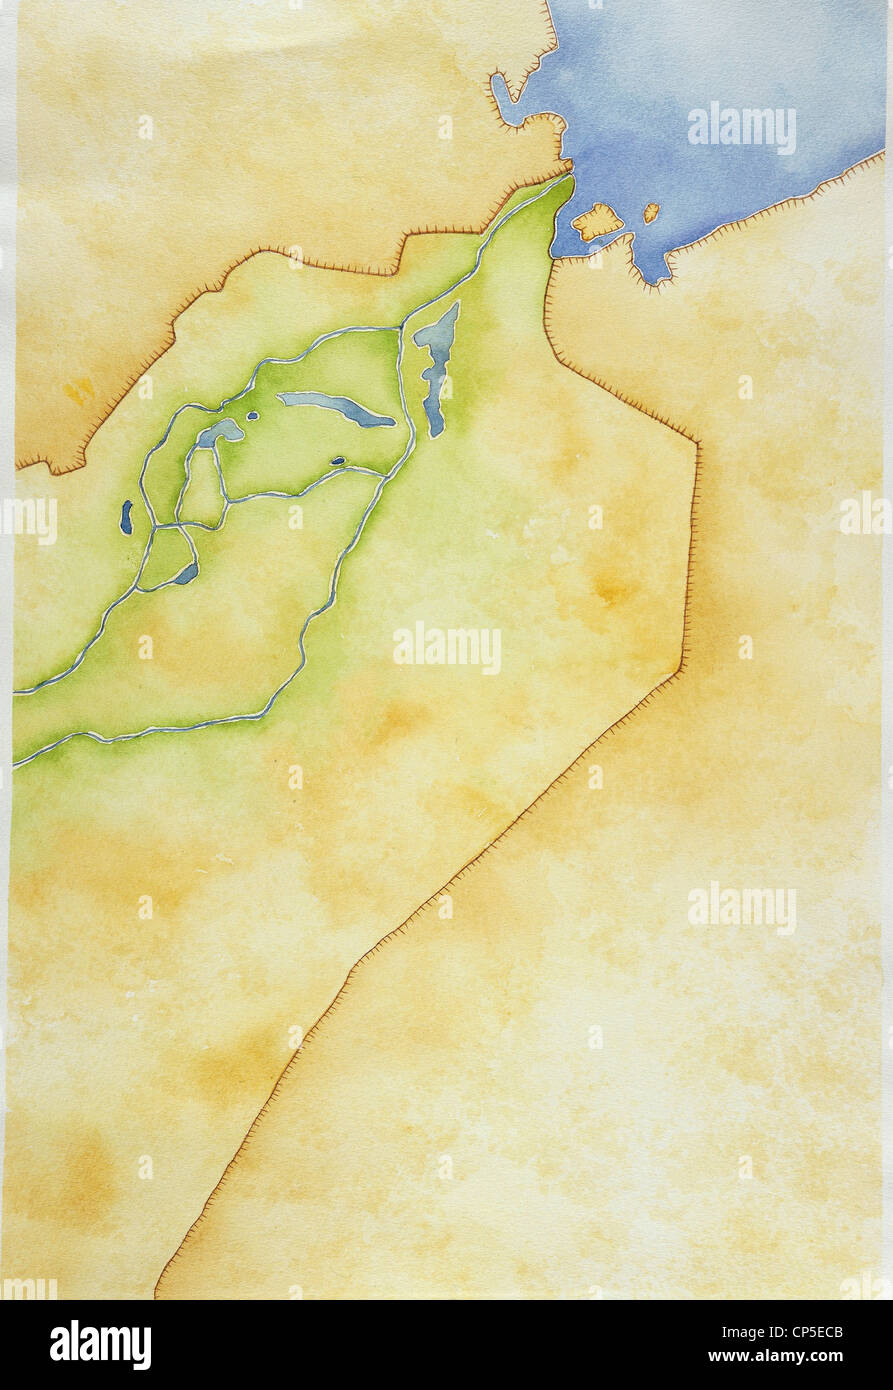 Cartography. Outline map of Mesopotamia and the Euphrates. Drawing. - Stock Image